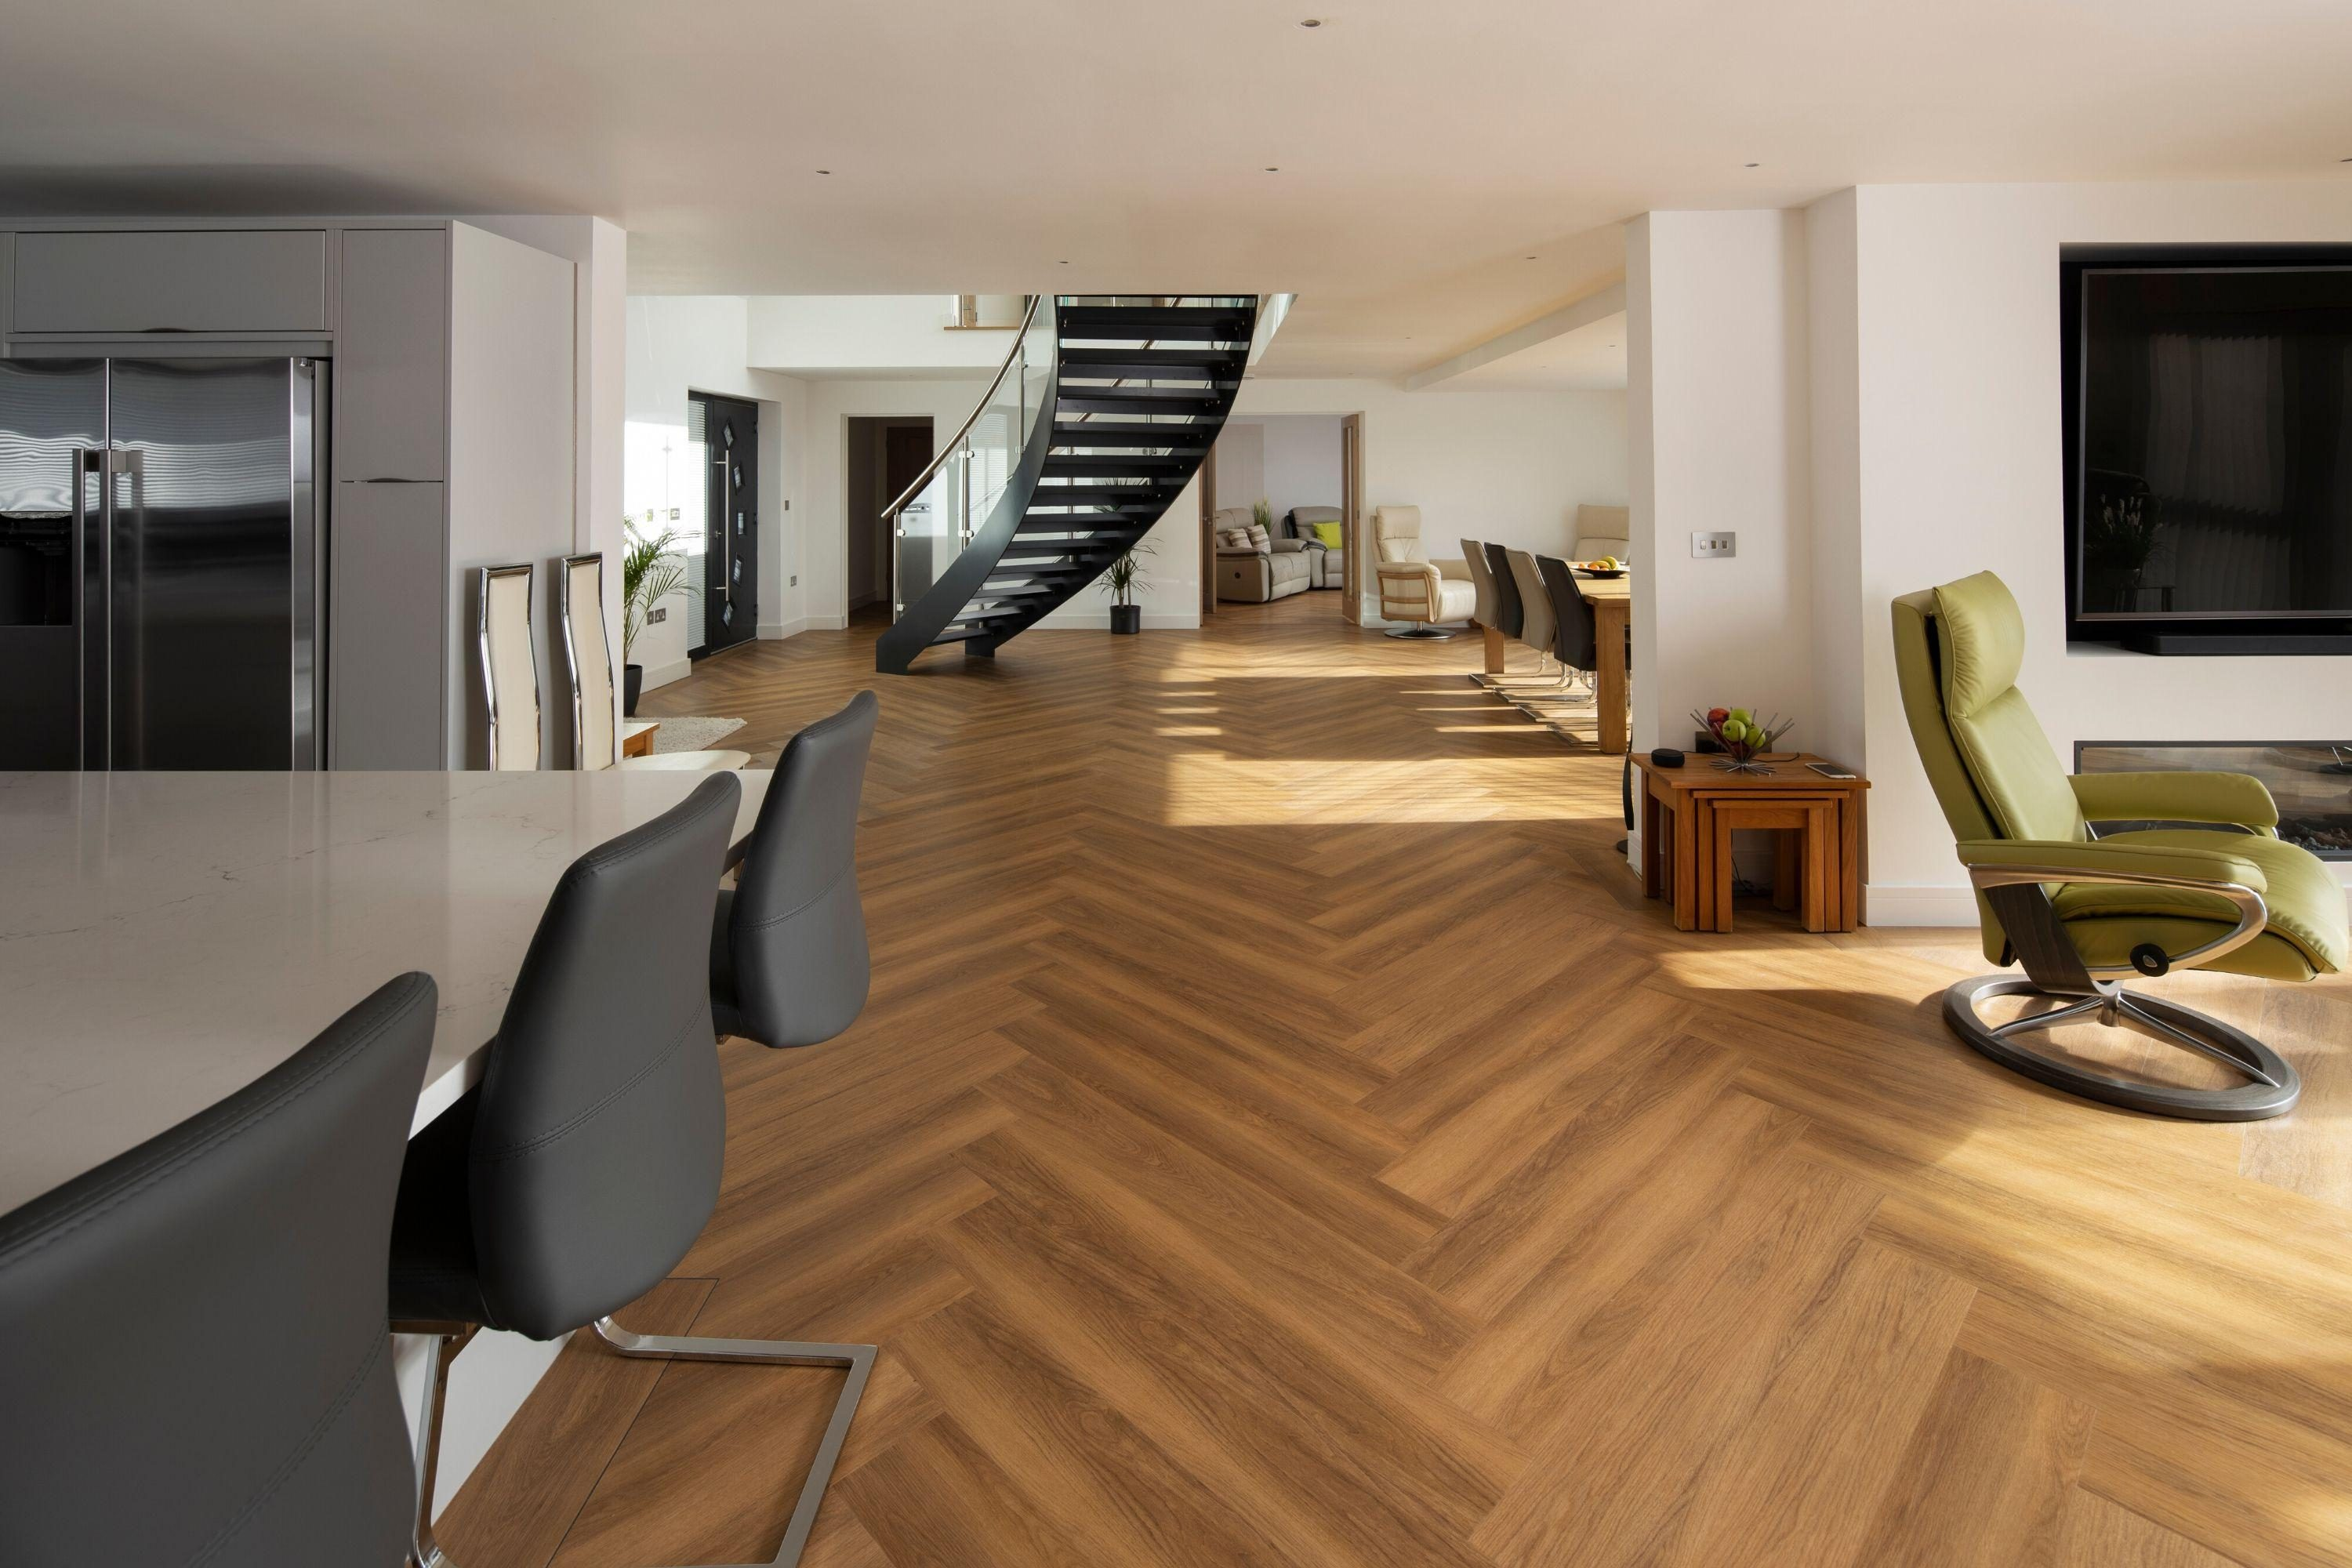 Curved staircase in residential property